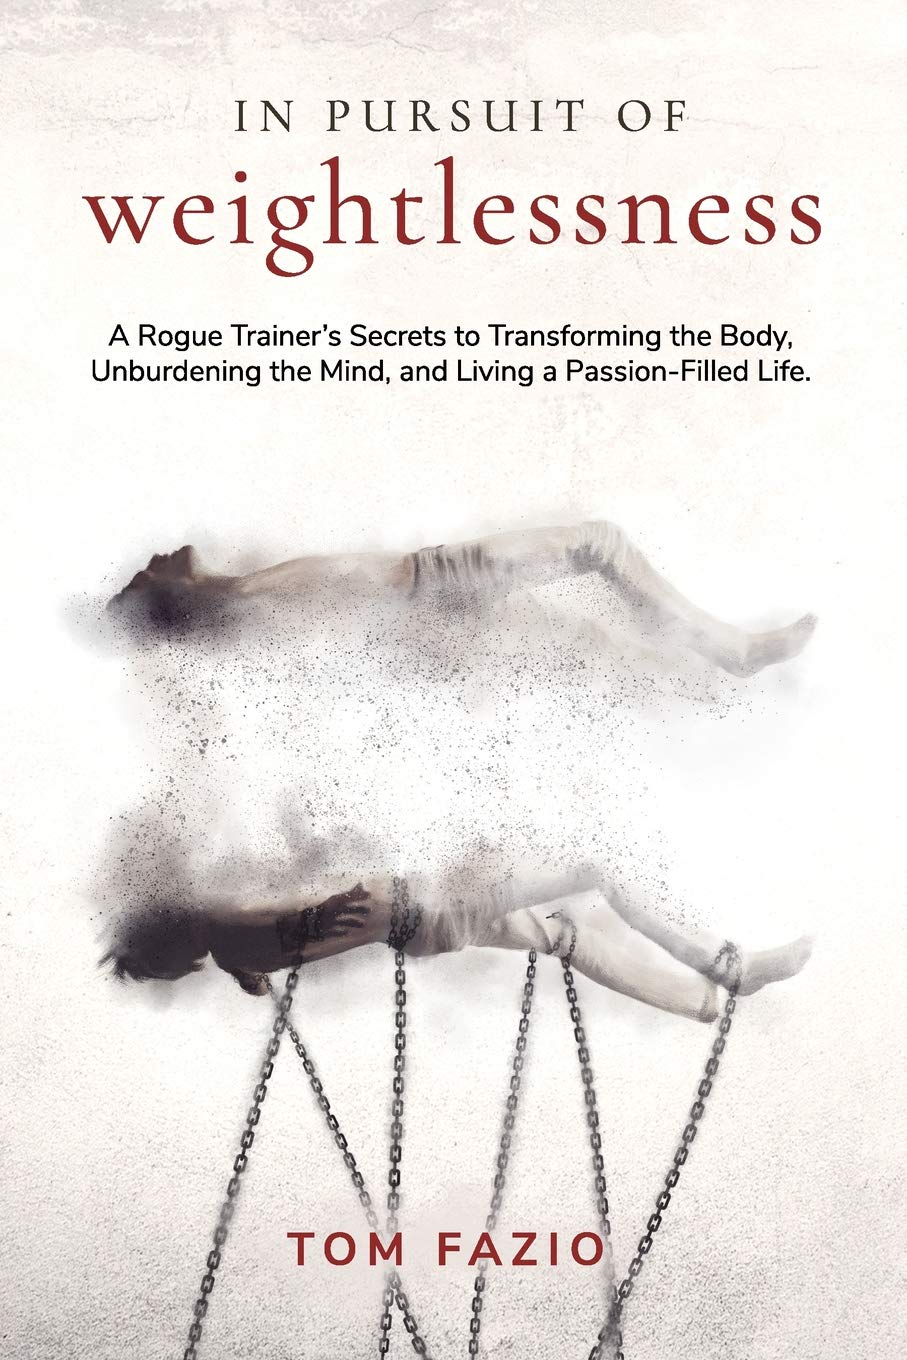 Image OfIn Pursuit Of Weightlessness: A Rogue Trainer's Secrets To Transforming The Body, Unburdening The Mind, And Living A Passi...